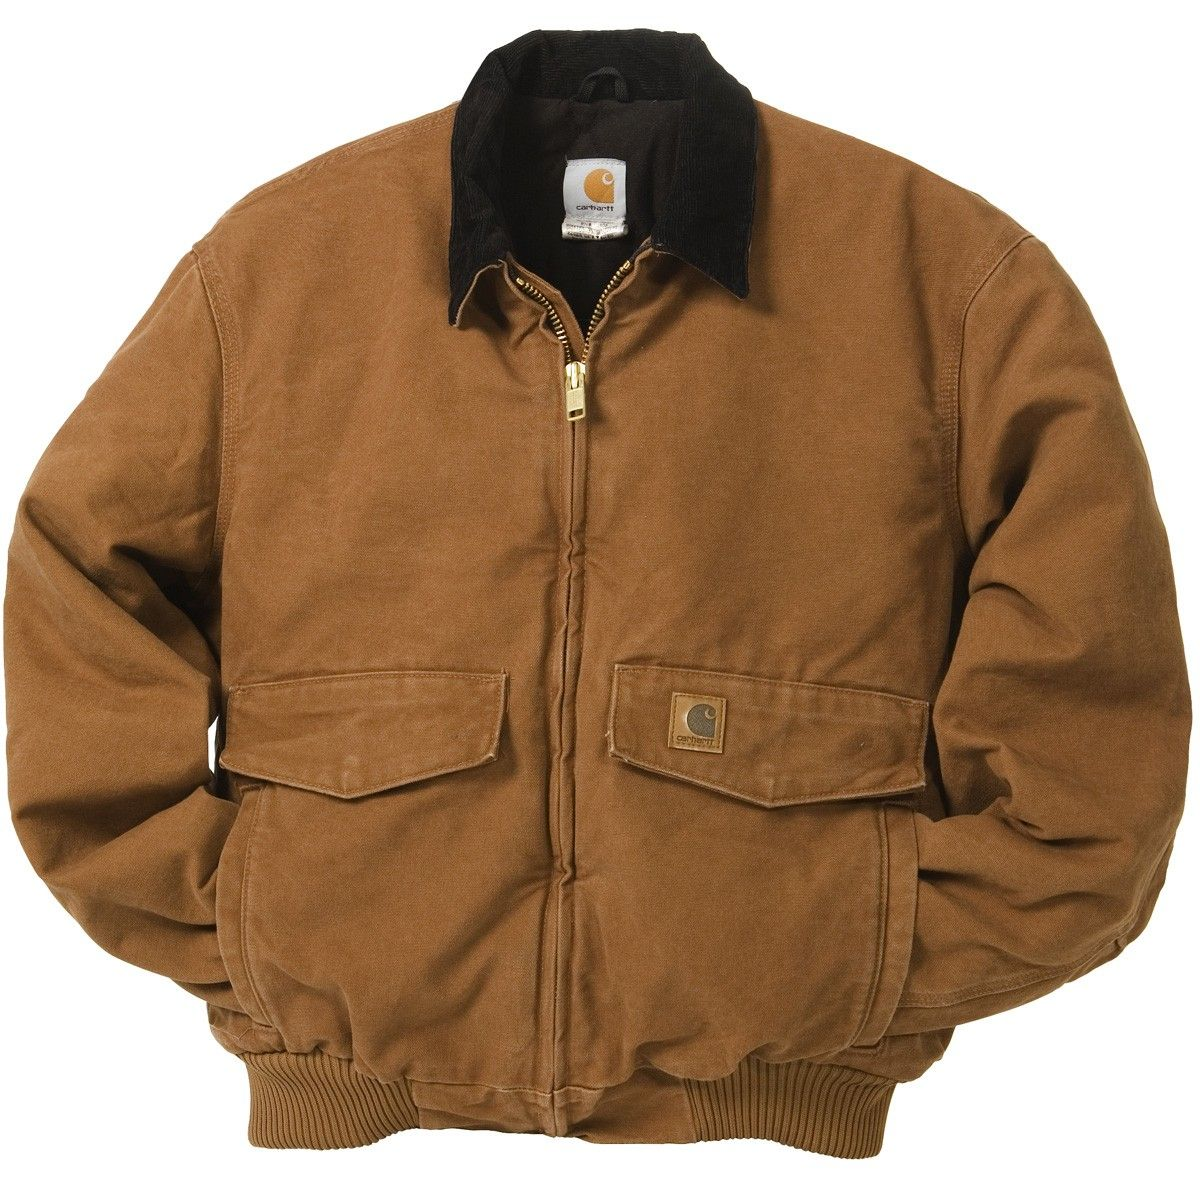 22 Cool Carhartt Concealed Carry Jacket Ideas Carhartt Jacket Jackets Concealed Carry Jacket [ 1200 x 1200 Pixel ]